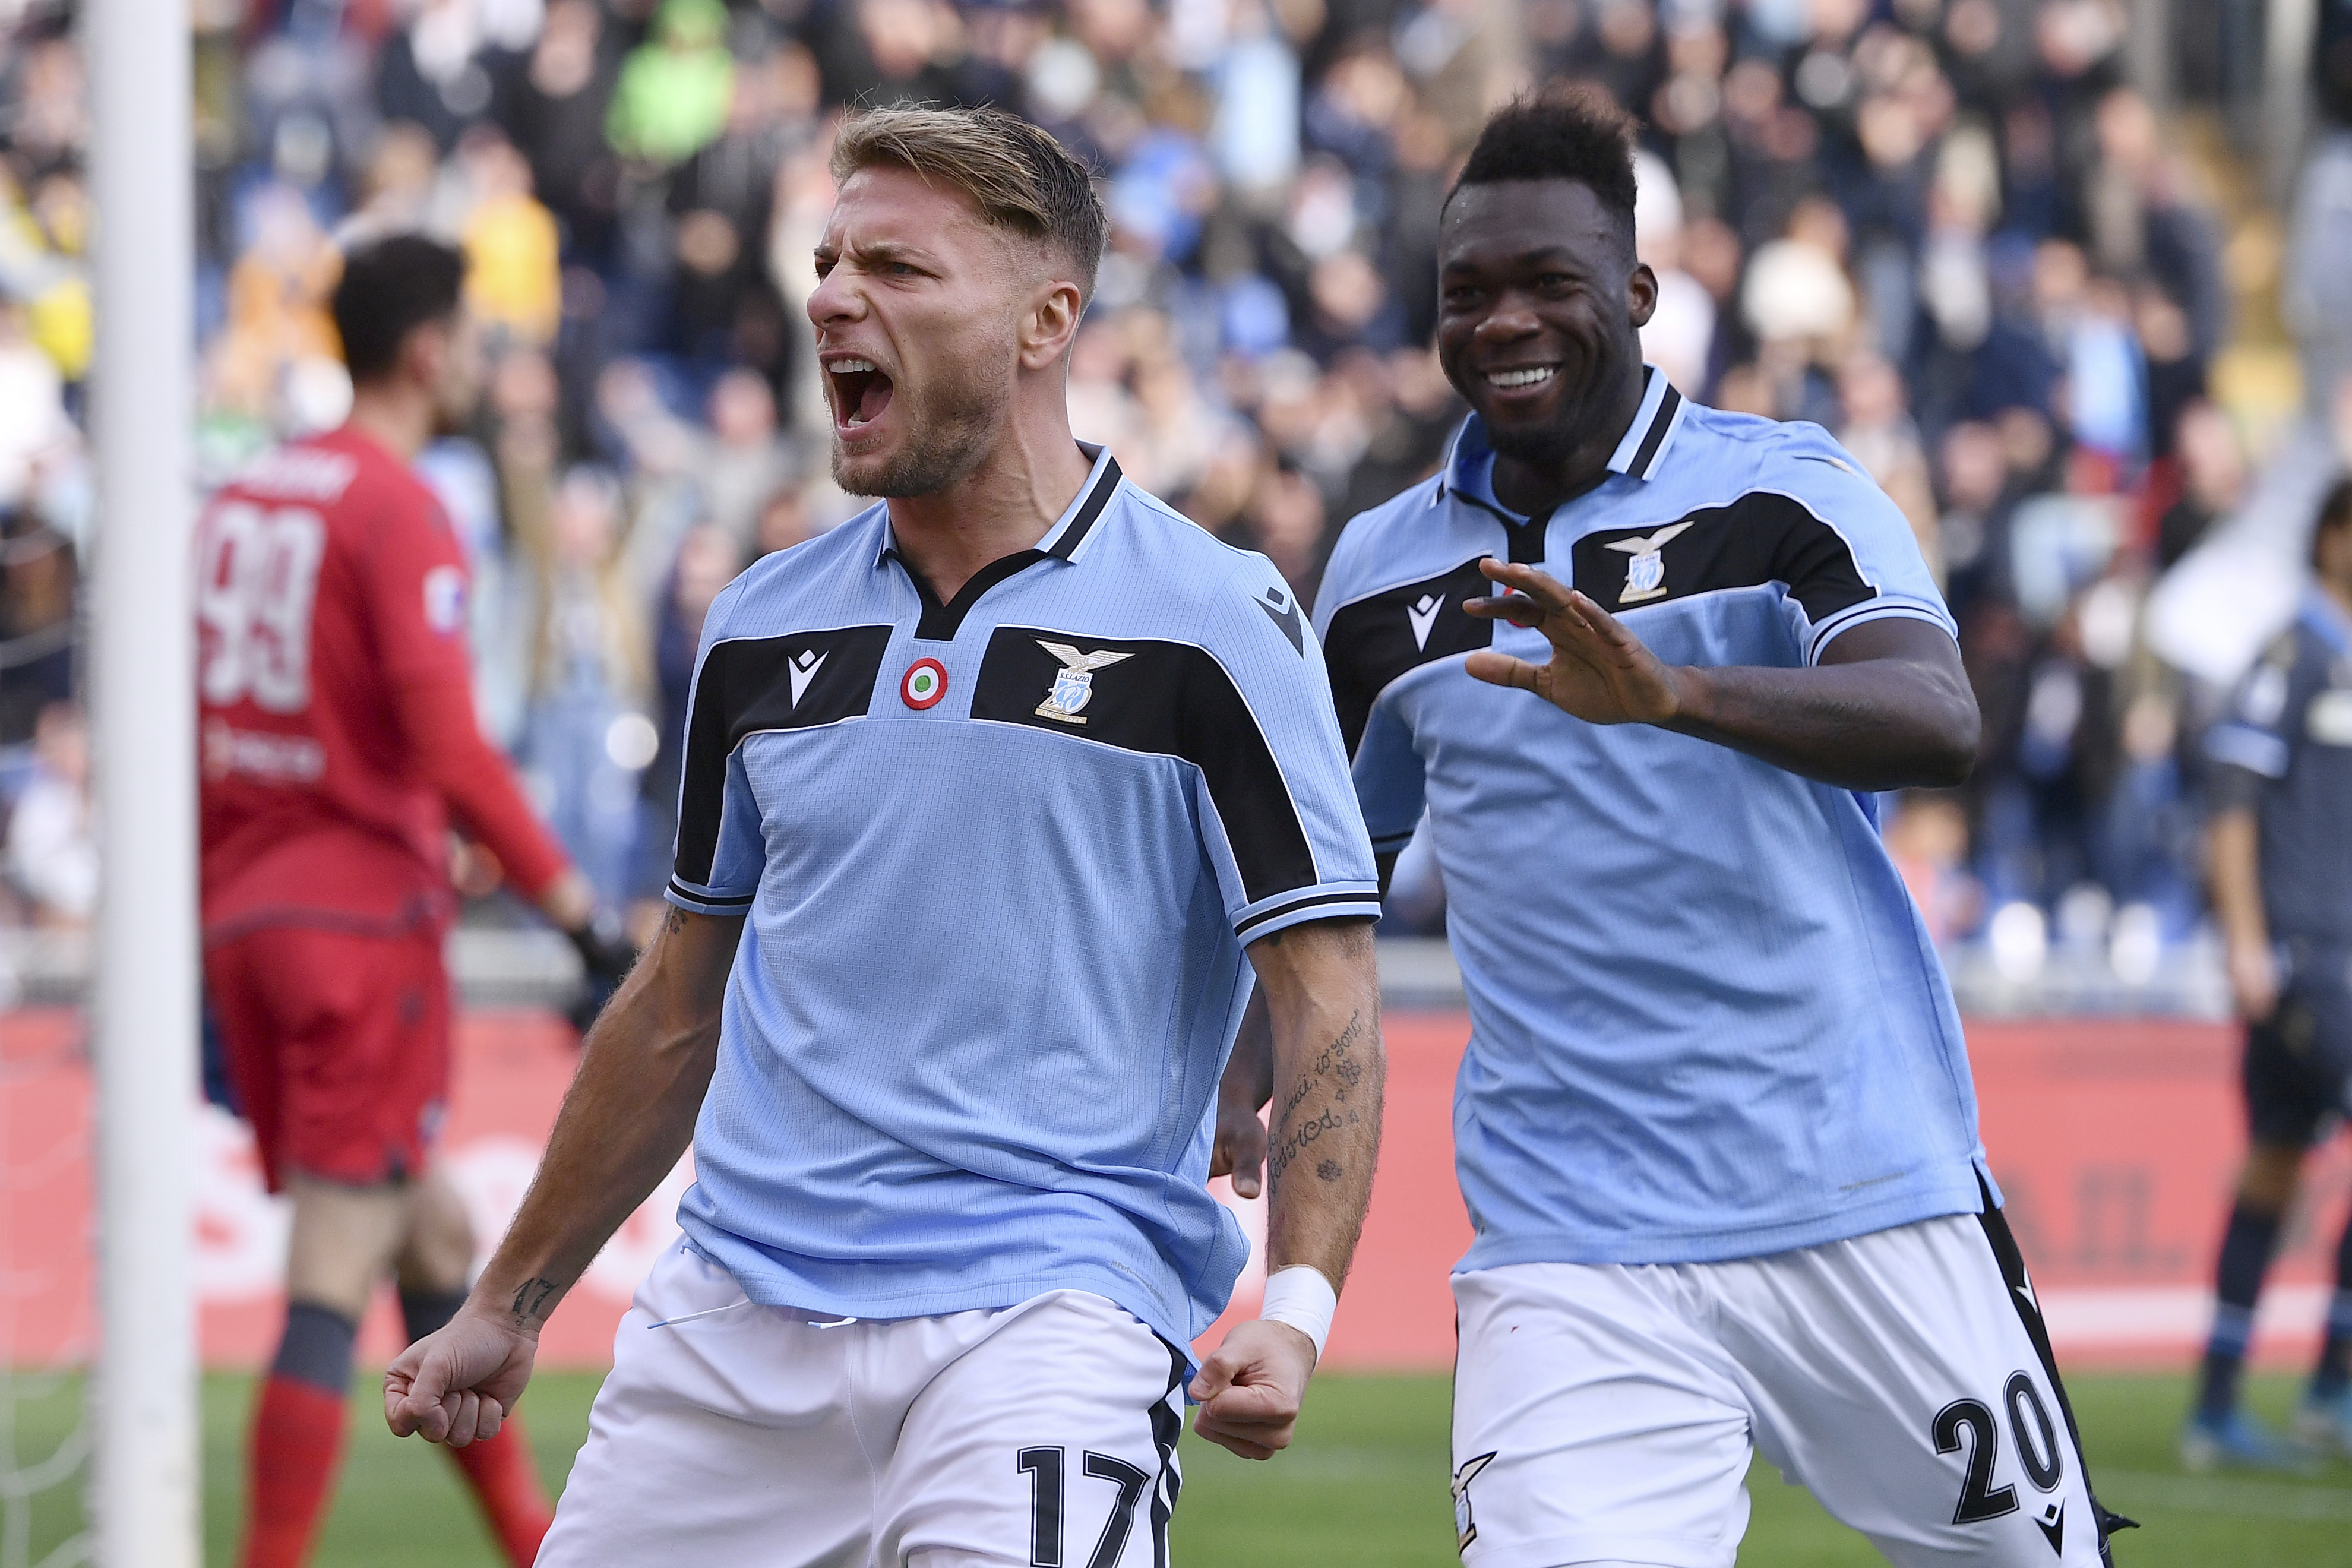 Lazio forward Immobile scoring at rate not seen in 61 years